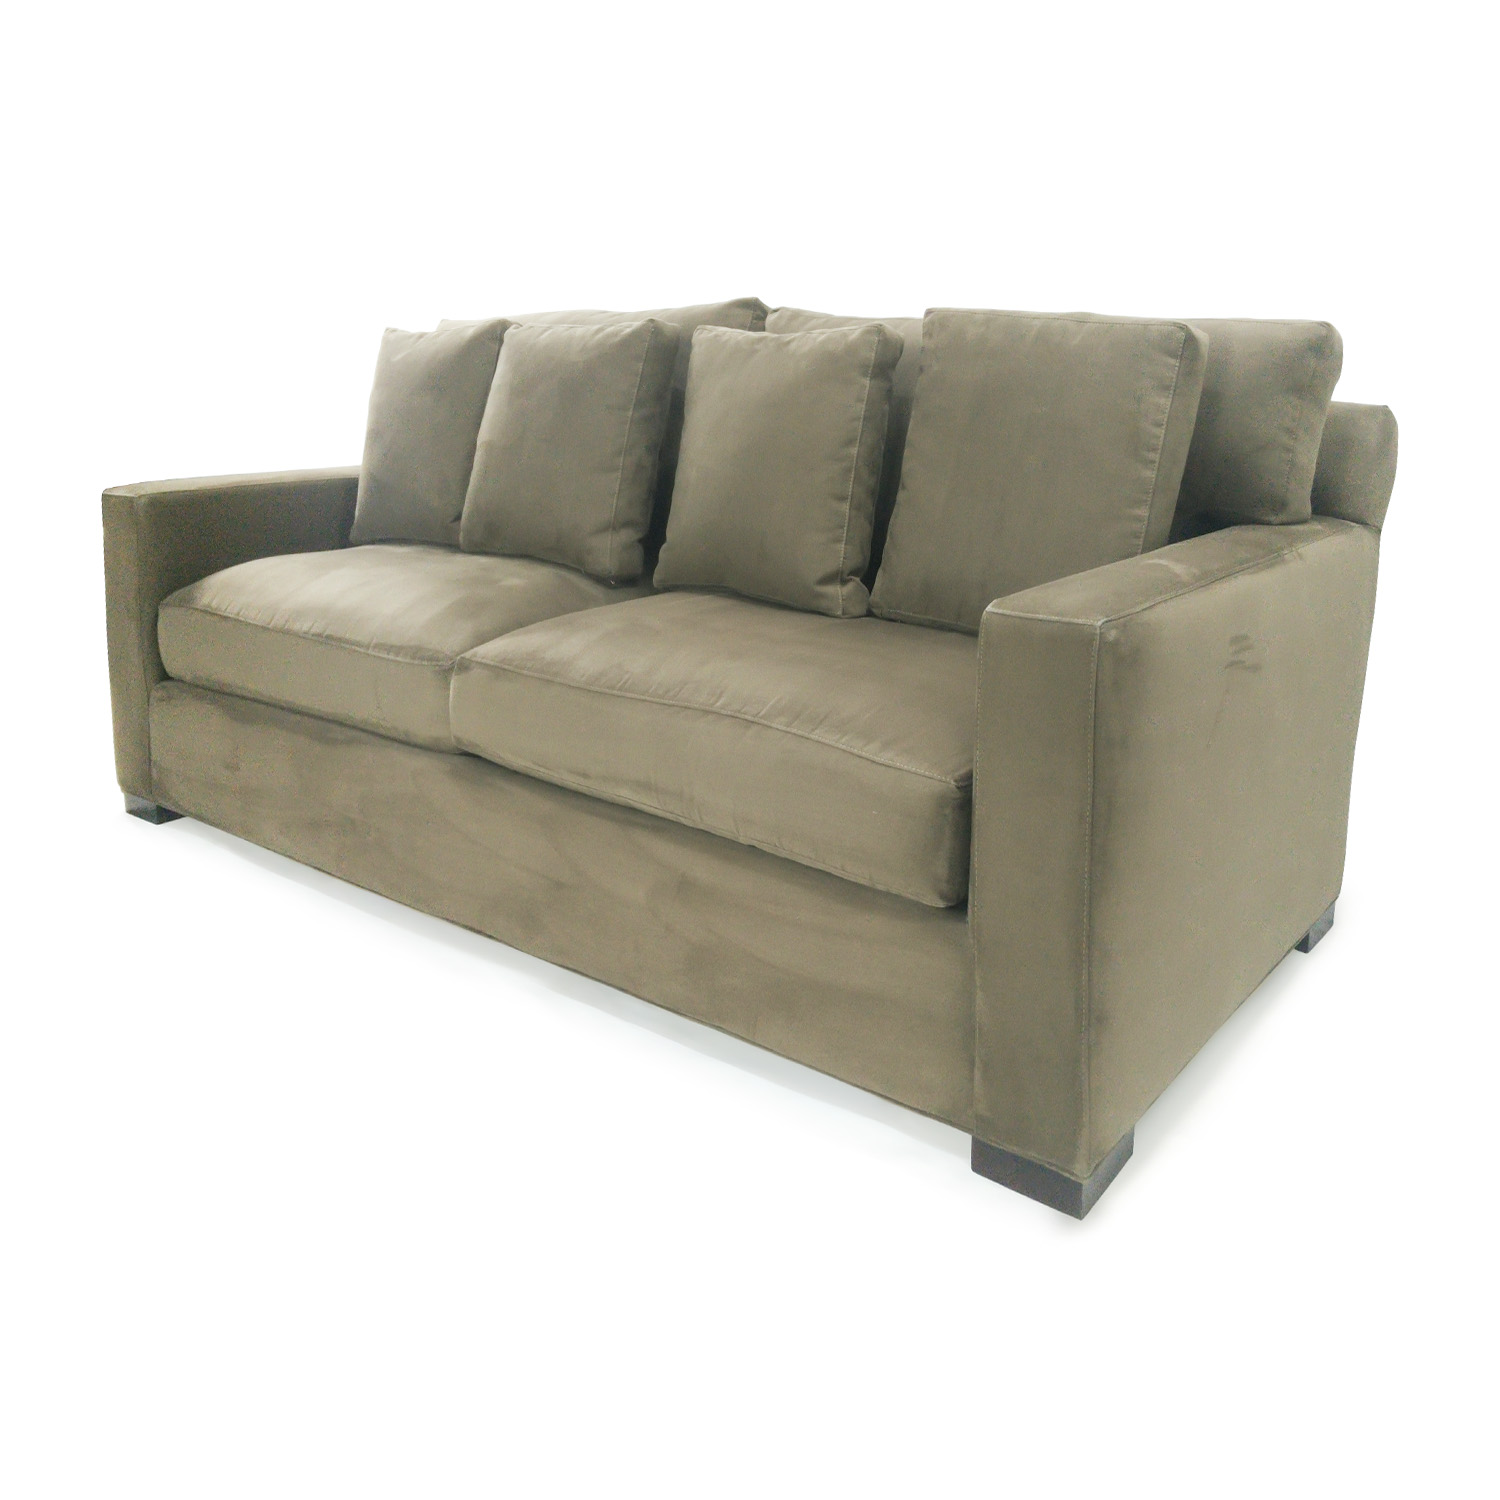 Furniture Simple But Elegant Tufted Sofa Design With